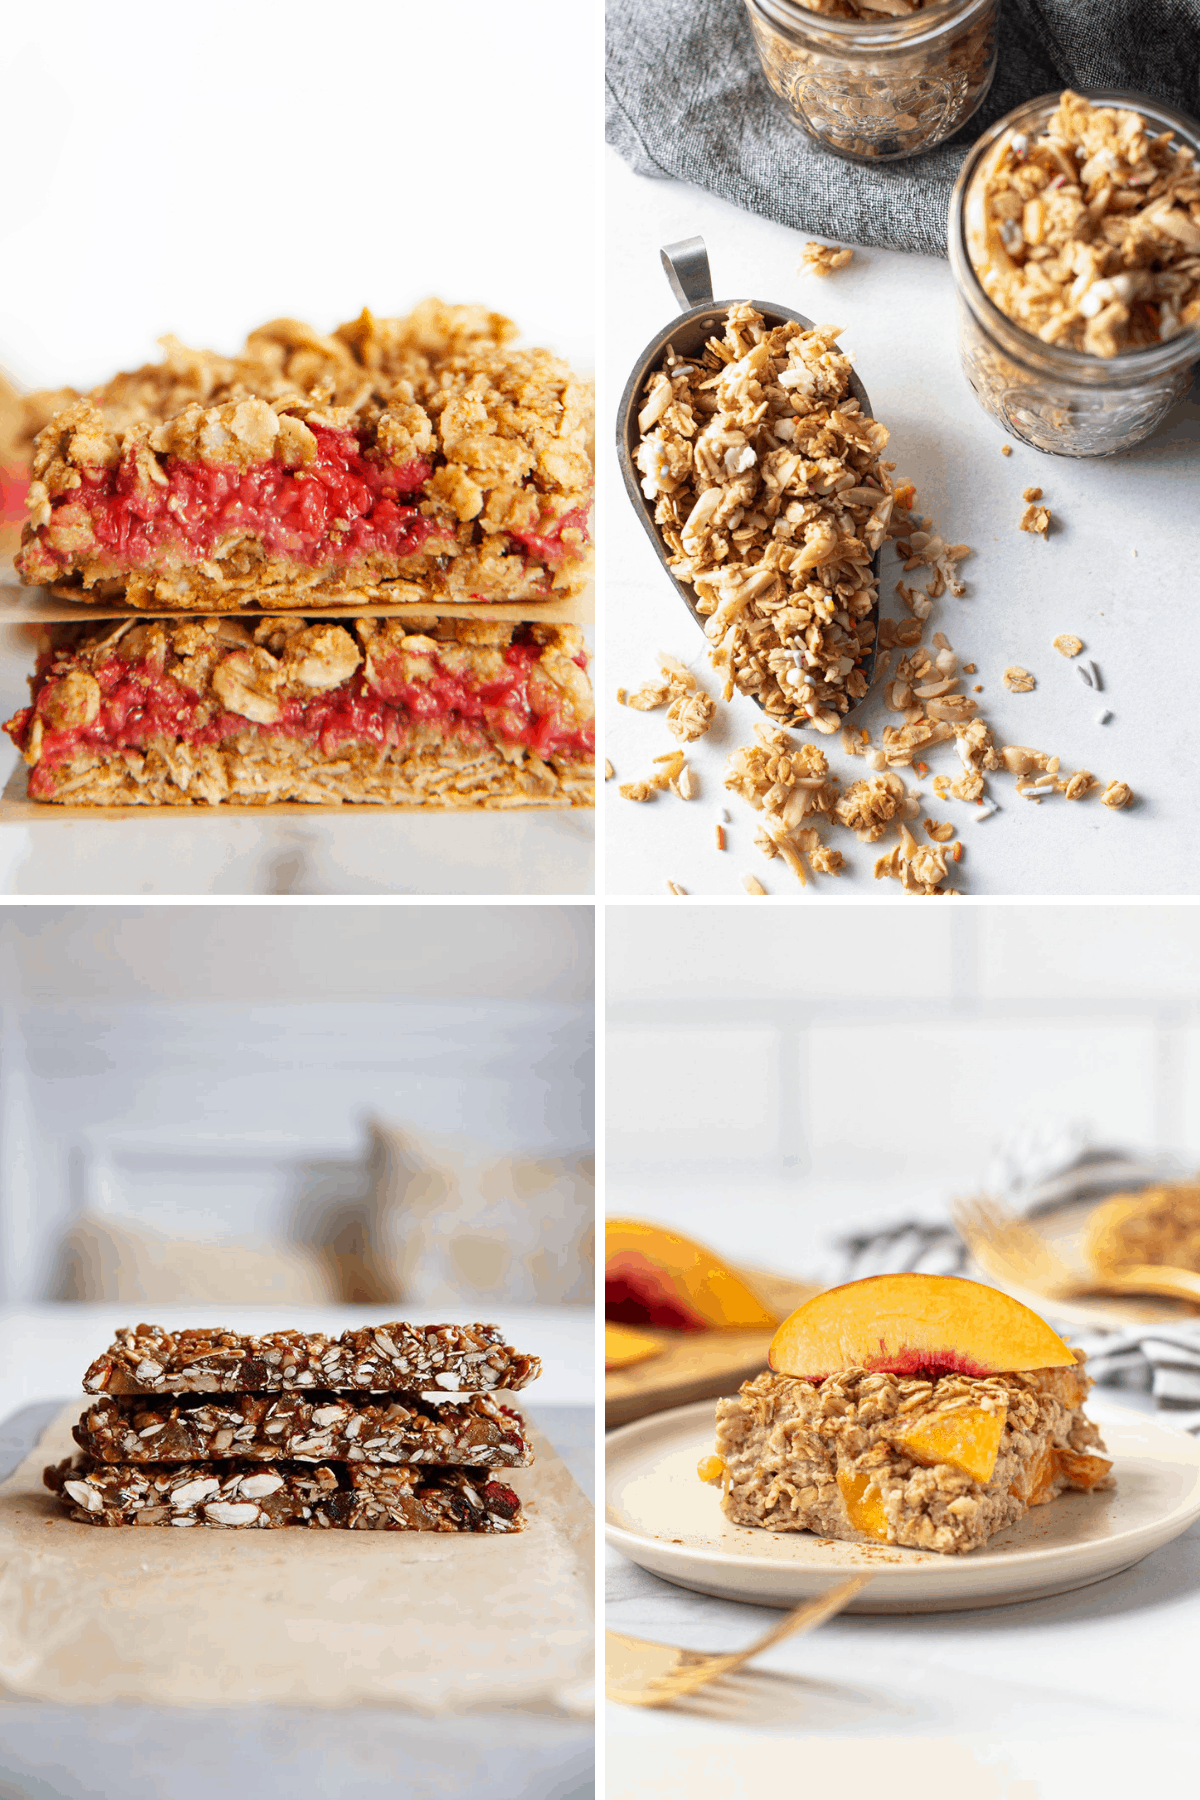 Healthy snack recipes made from oats.